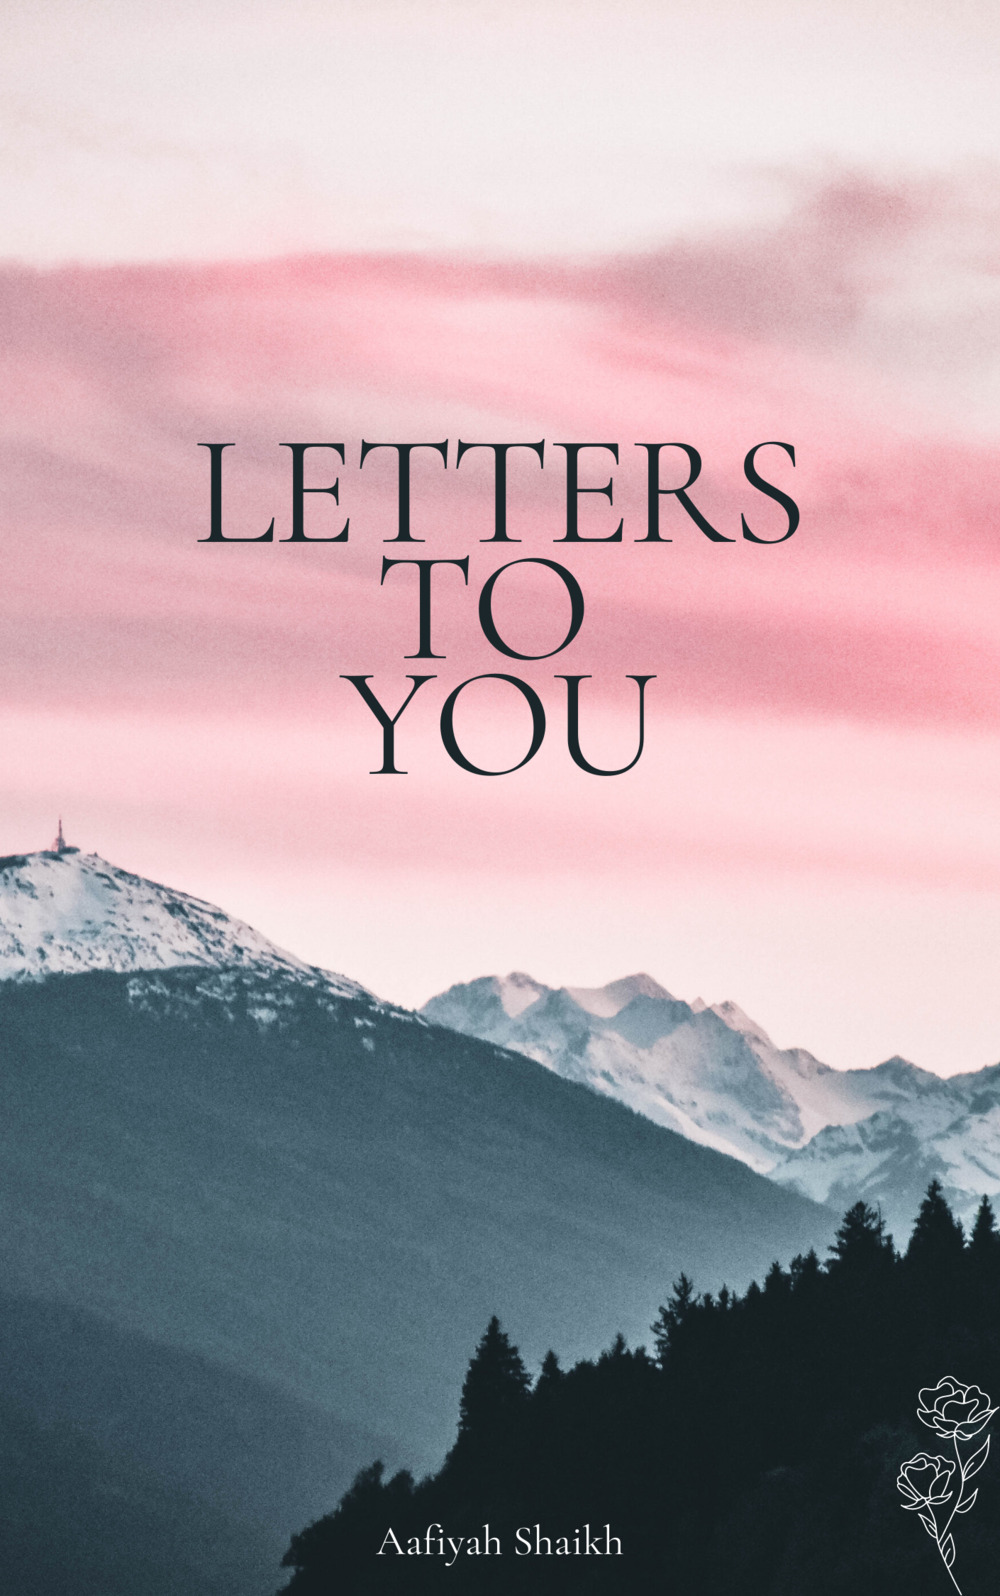 [Image description: Book cover of 'Letters To You' by Aafiyah Shaikh] Via Aafiyah